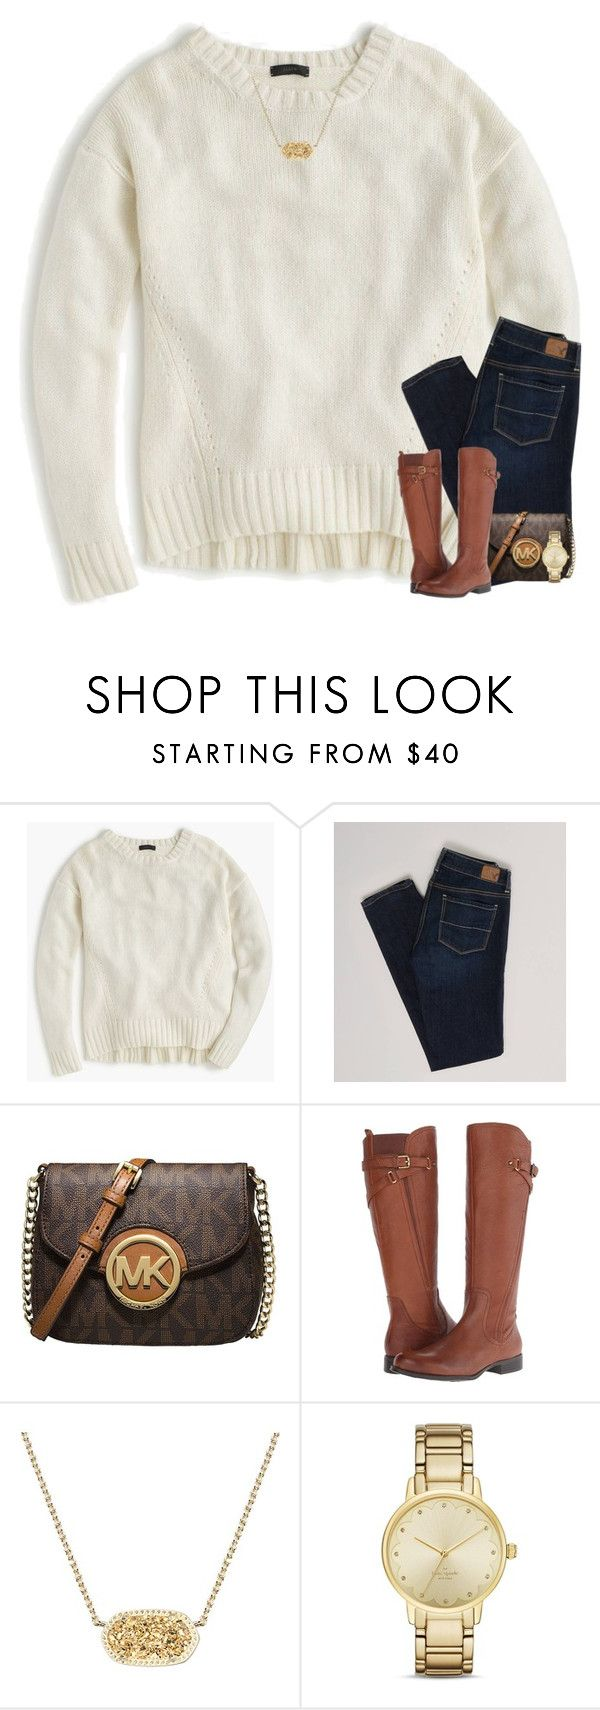 """""""Just got Surgery! (read d)"""" by your-daily-prep ❤ liked on Polyvore featuring J.Crew, American Eagle Outfitters, MICHAEL Michael Kors, Naturalizer, Kendra Scott and Kate Spade"""